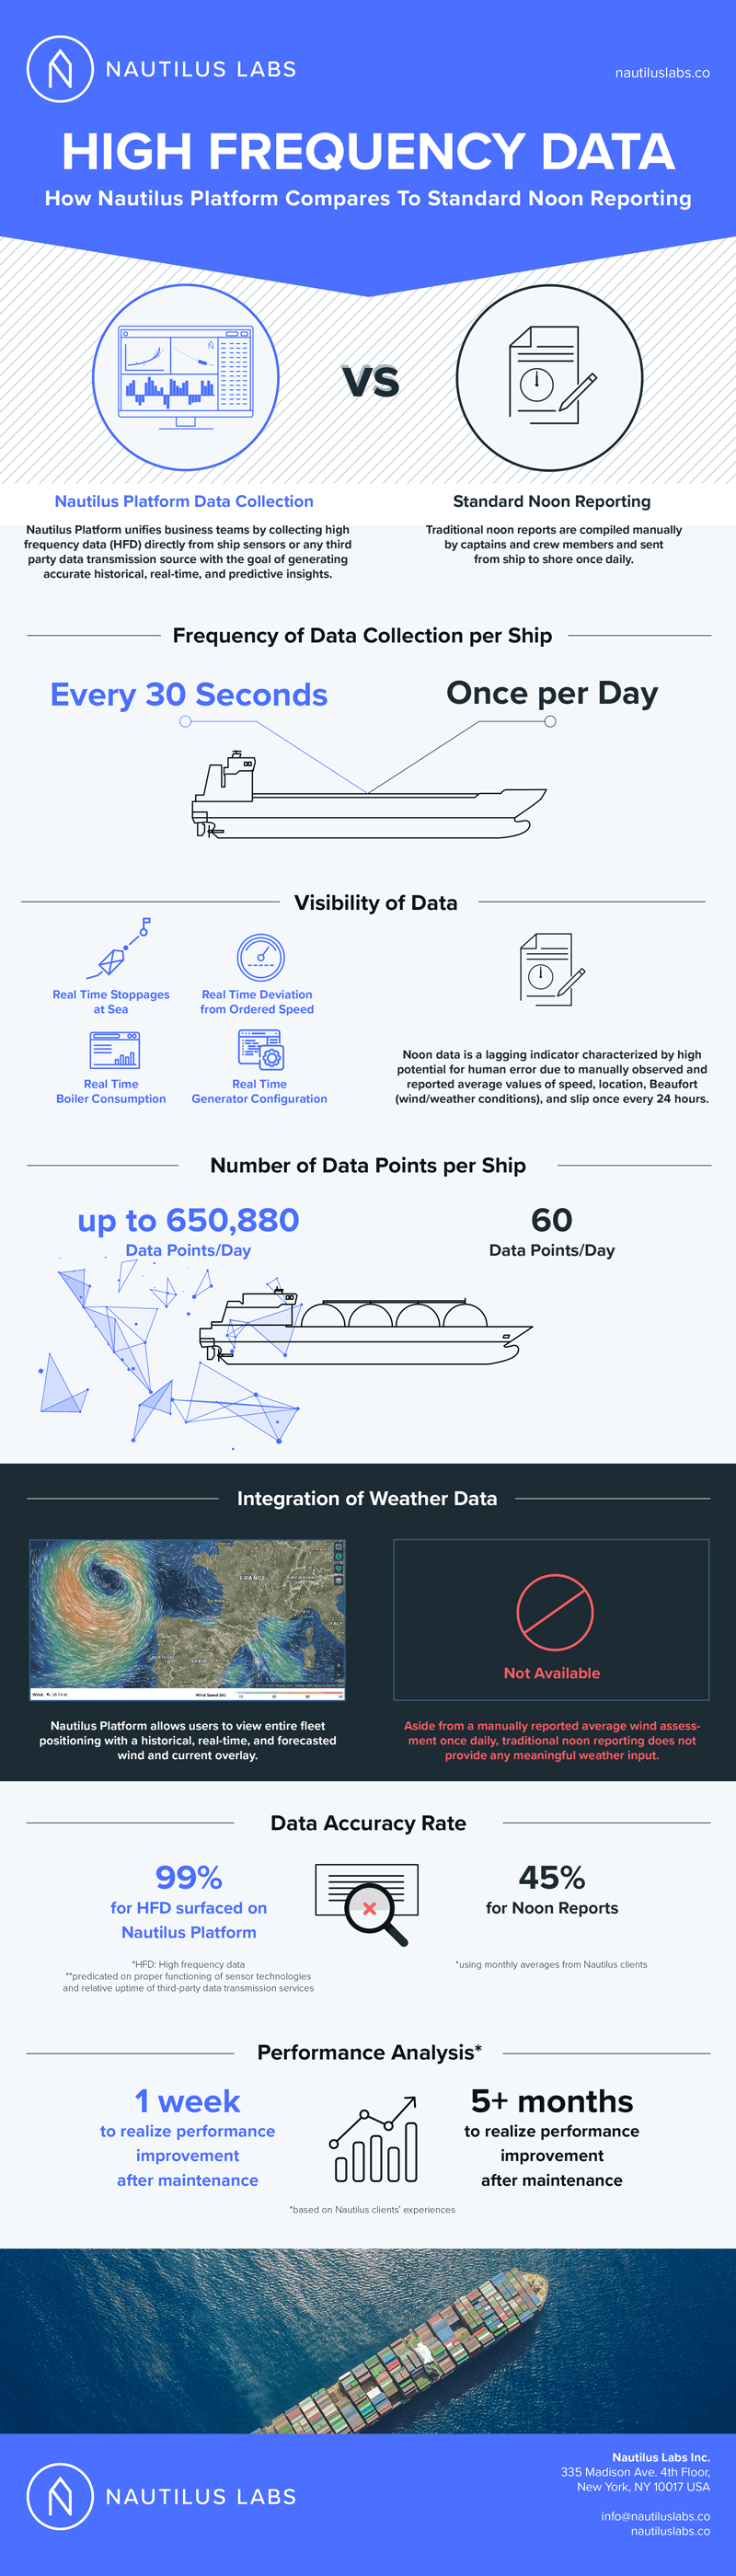 Nautilus Labs Infographic on High Frequency Data and Noon Reports